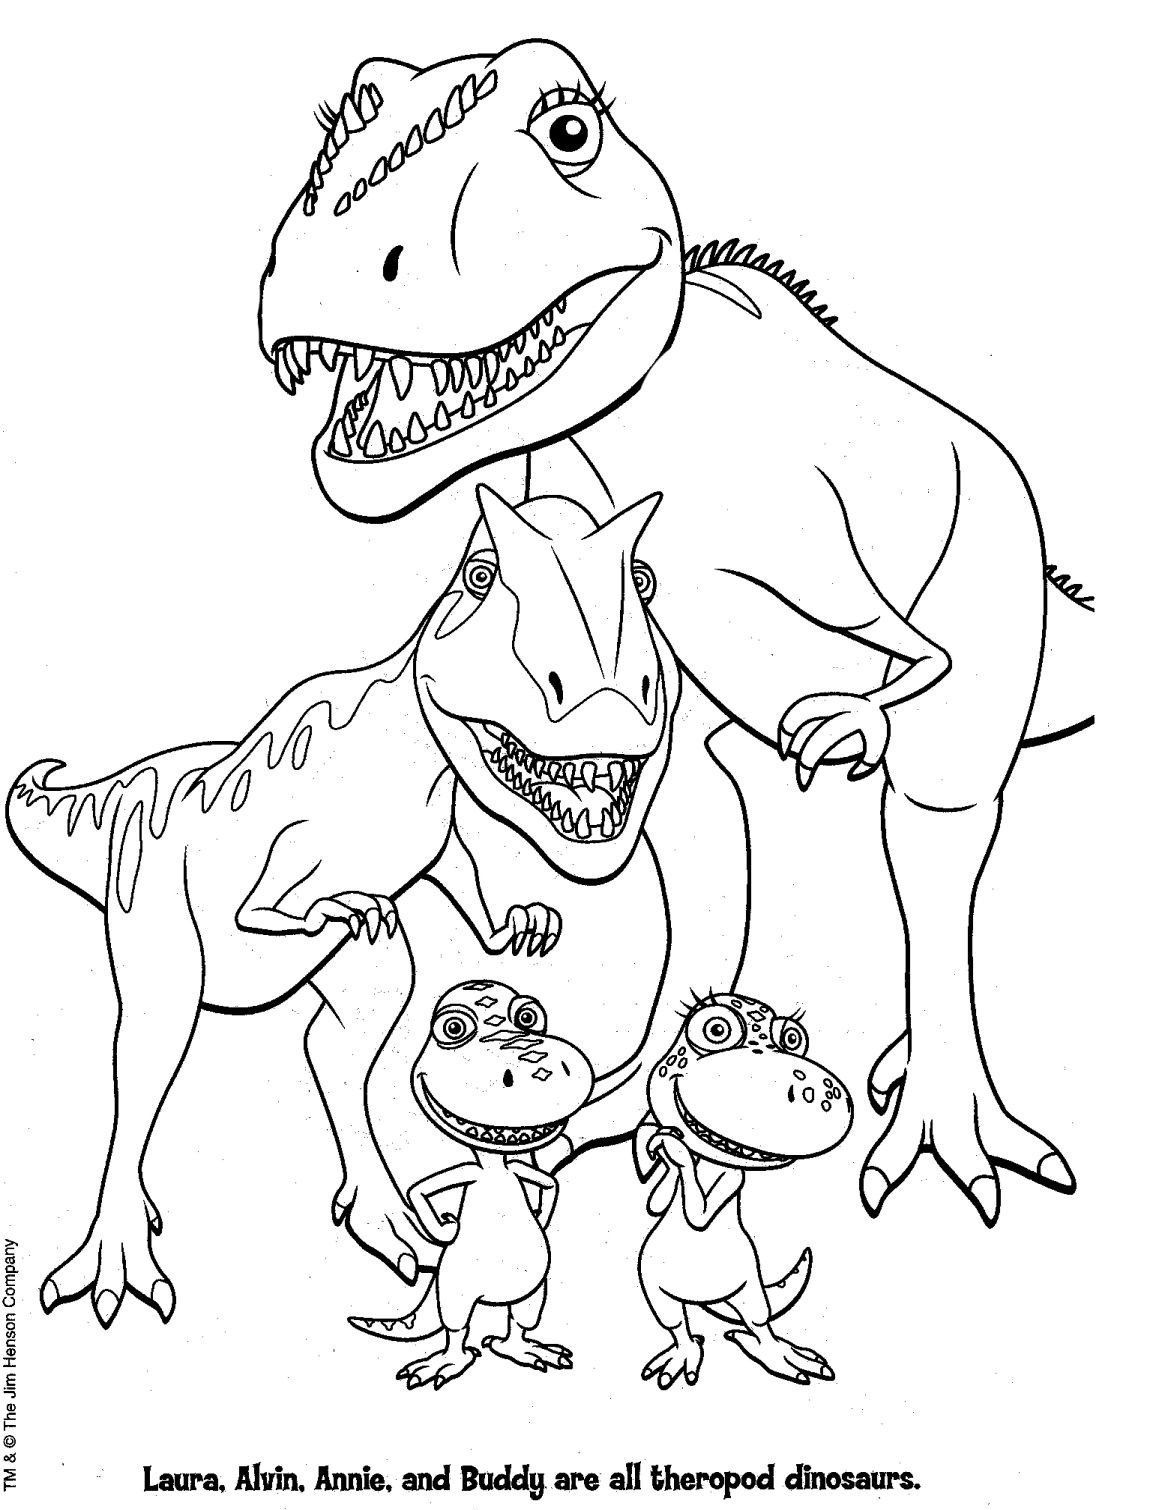 Dinosaur Coloring Pages Free Printable Printable Coloring Pages Dinosaur Coloring Pages Train Coloring Pages Dinosaur Coloring